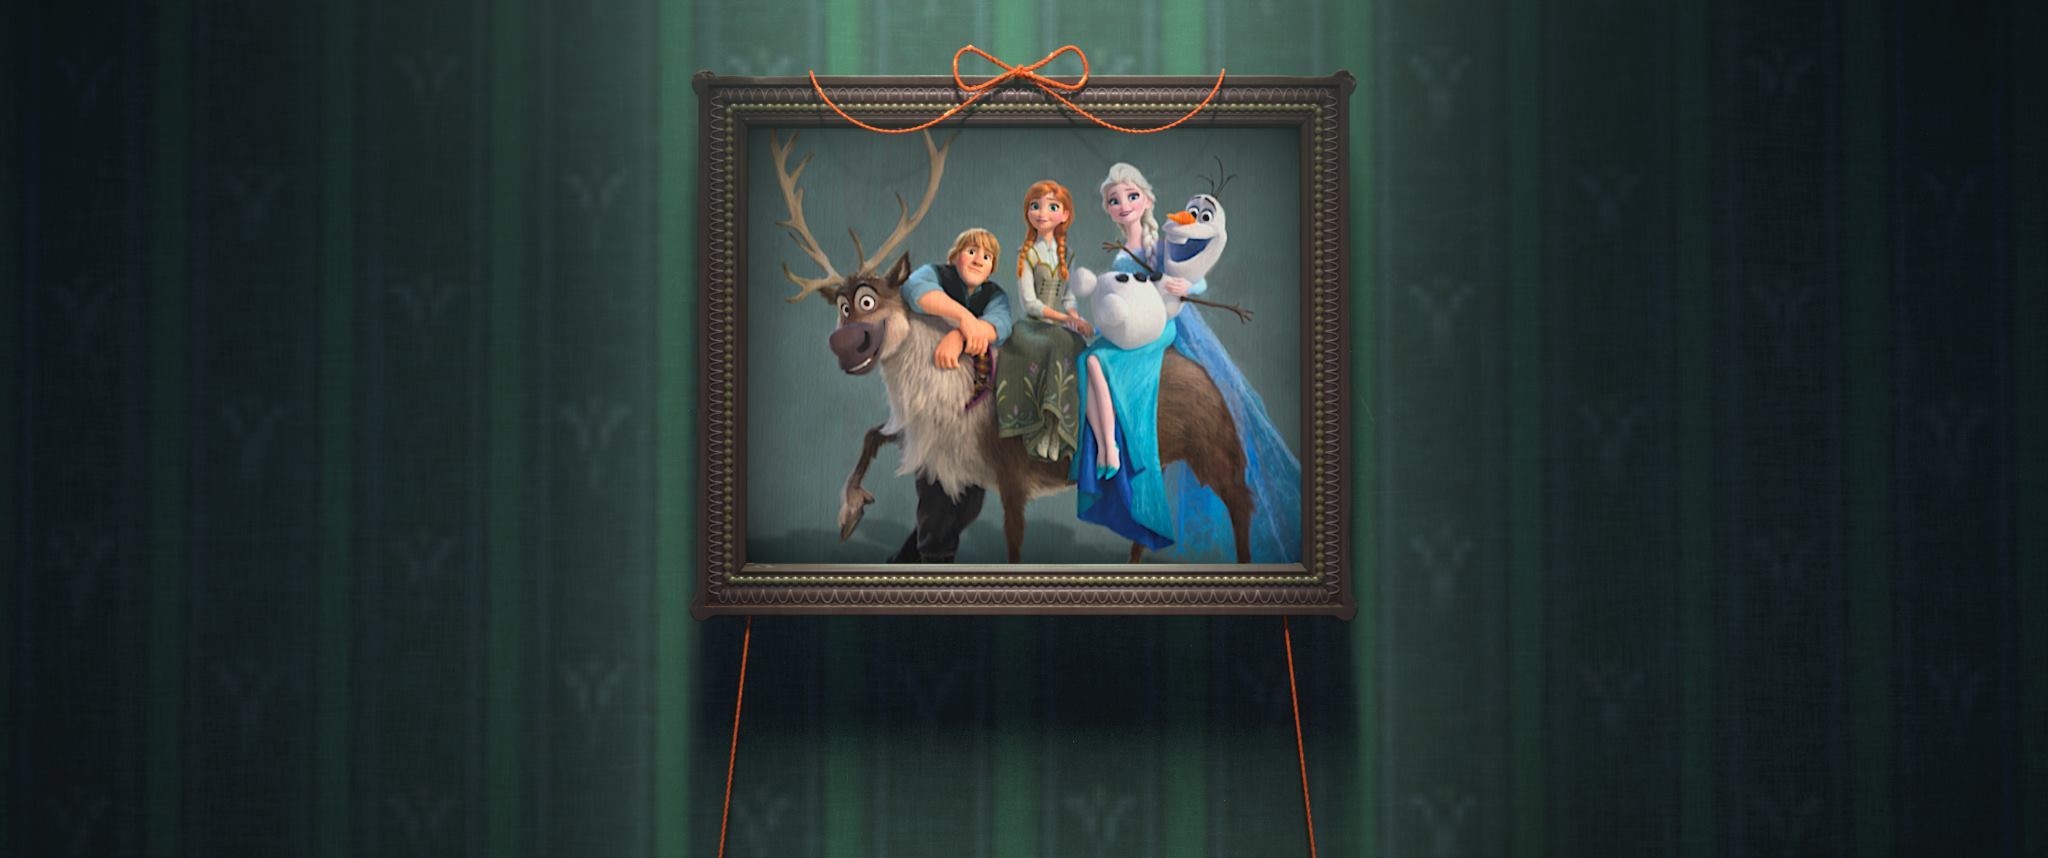 Images from the New Frozen Fever Short